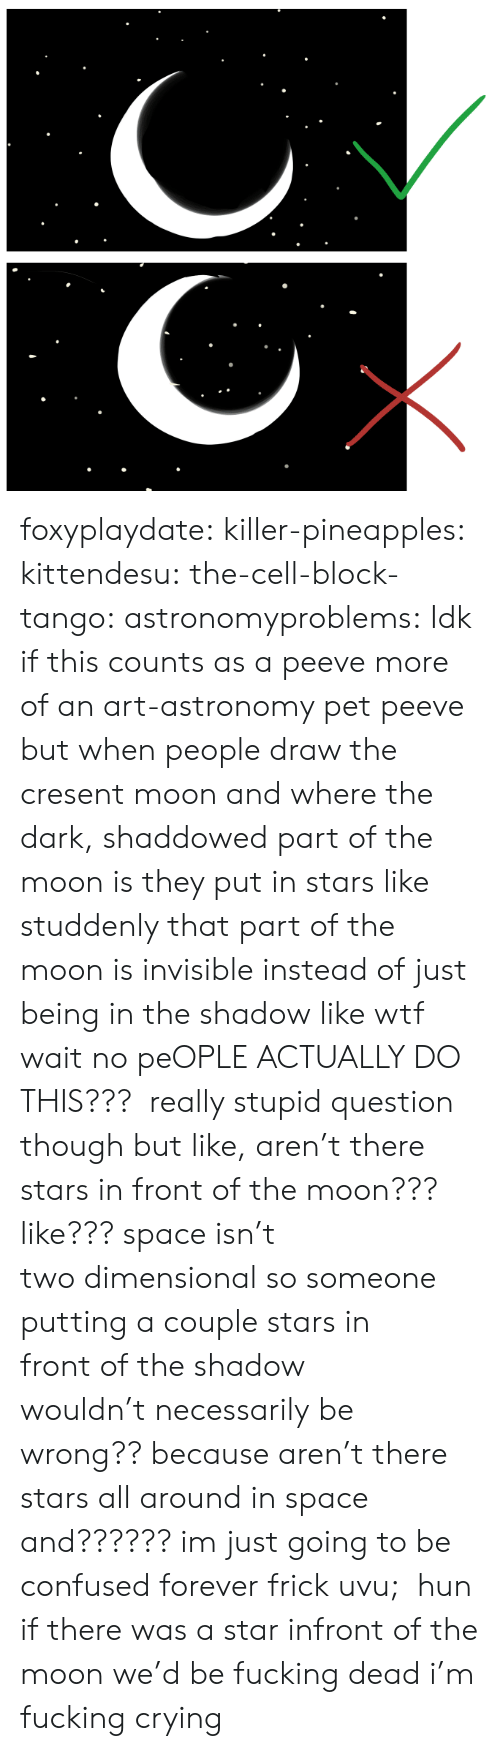 Actually Do: foxyplaydate:  killer-pineapples:  kittendesu:  the-cell-block-tango:  astronomyproblems:  Idk if this counts as a peeve more of an art-astronomy pet peeve but when people draw the cresent moon and where the dark, shaddowed part of the moon is they put in stars like studdenly that part of the moon is invisible instead of just being in the shadow like wtf  wait no peOPLE ACTUALLY DO THIS???  really stupid question though but like, aren't there stars in front of the moon??? like??? space isn't twodimensionalso someone putting a couple starsin frontof the shadow wouldn'tnecessarilybe wrong?? because aren't there stars all around in space and?????? im just going to be confused forever frick uvu;  hun if there was a star infront of the moon we'd be fucking dead  i'm fucking crying